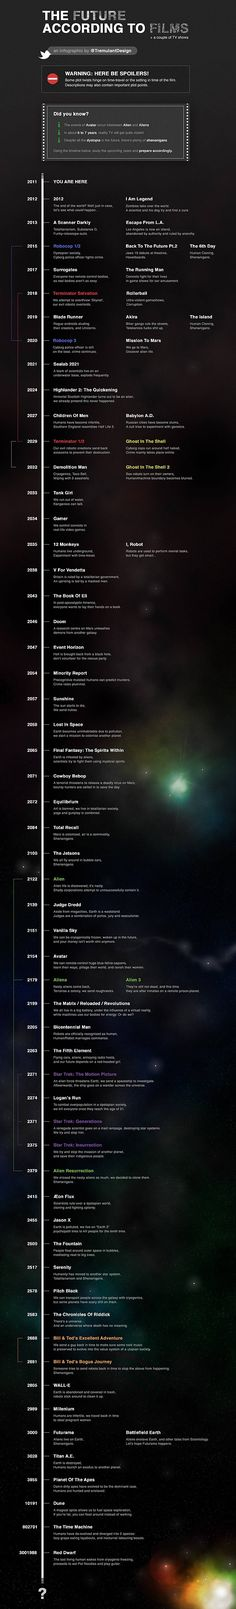 The Future According to Films #InfoGraphics #Data #GraphicDesign